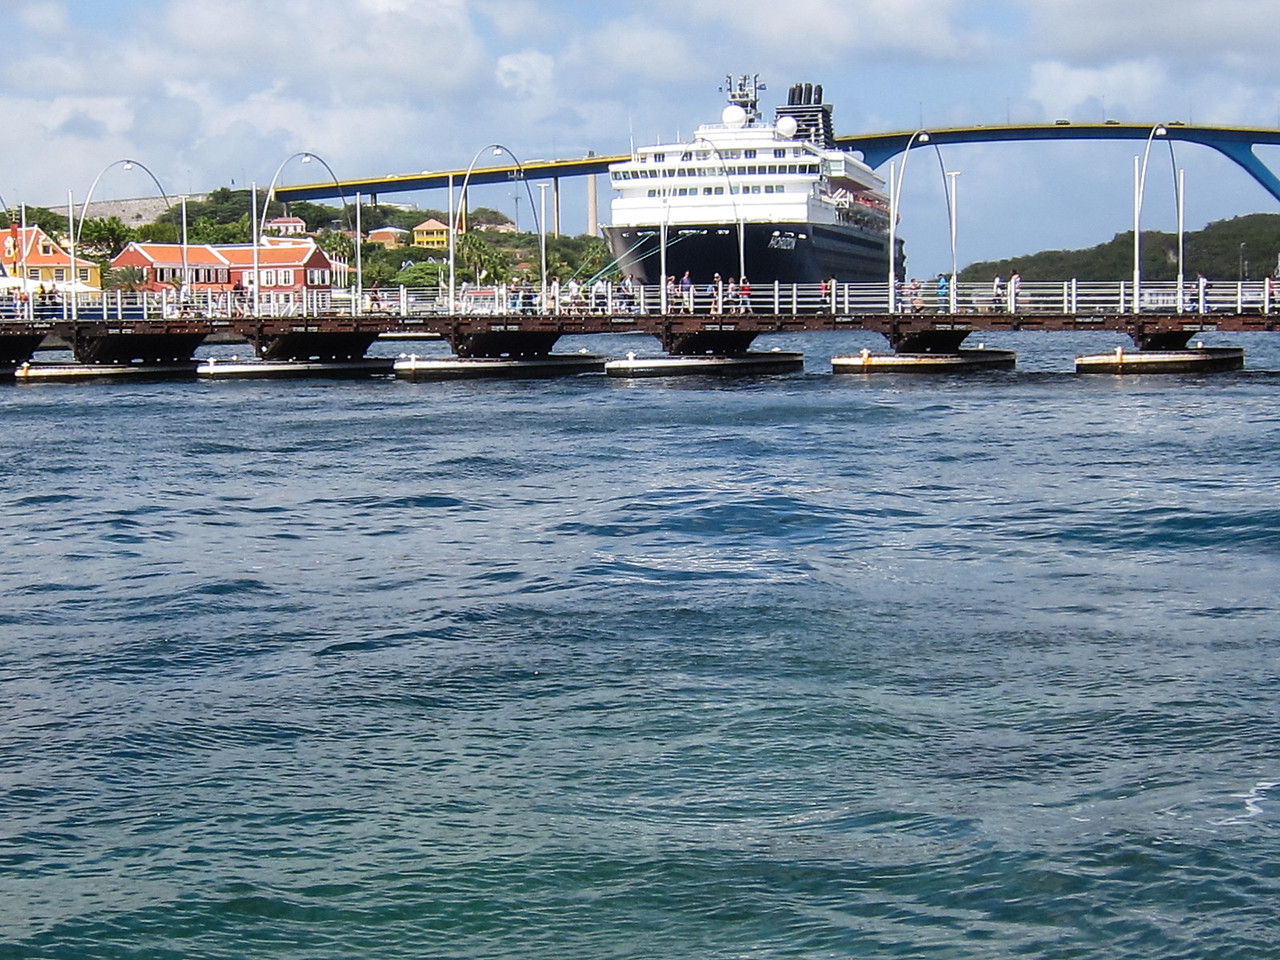 Queen Emma Pontoon Bridge (foreground) with Queen Juliana Bridge (background) in Willemstad, Curaçao - February 2013